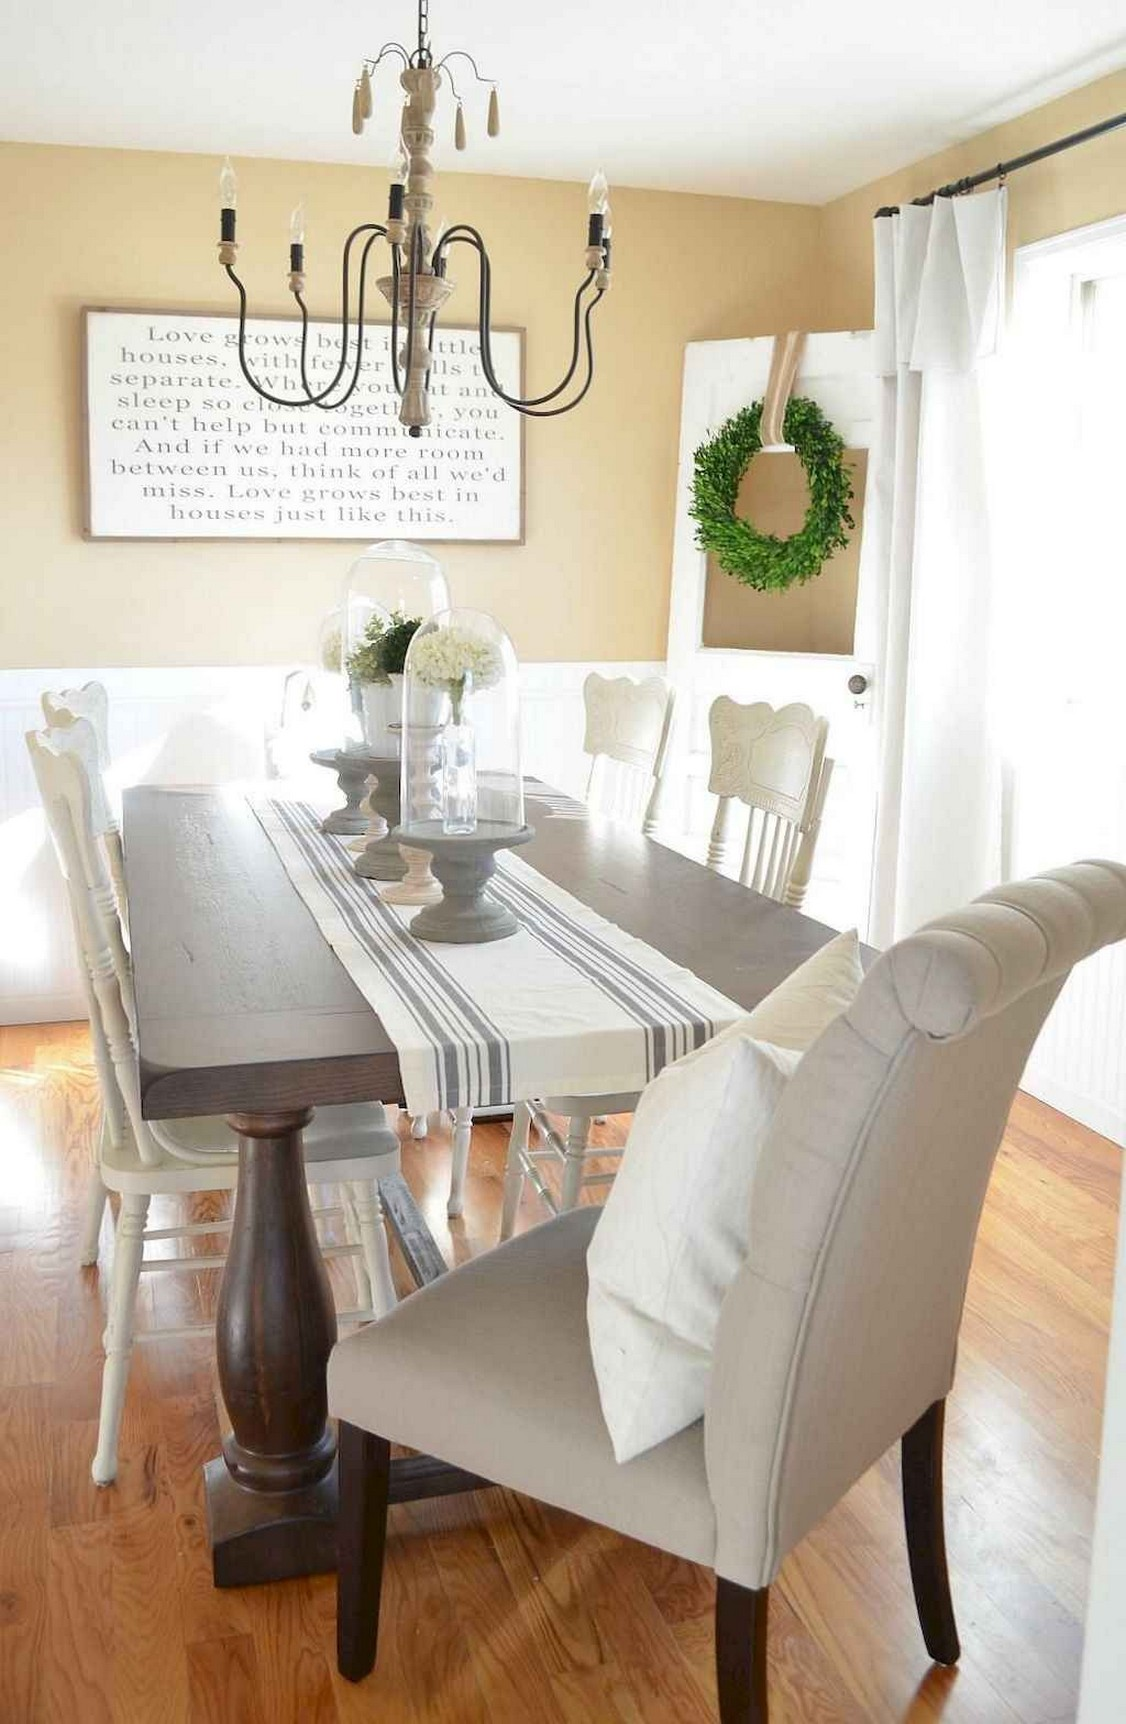 86 Different Types Of Dining Chairs Home Decor 37